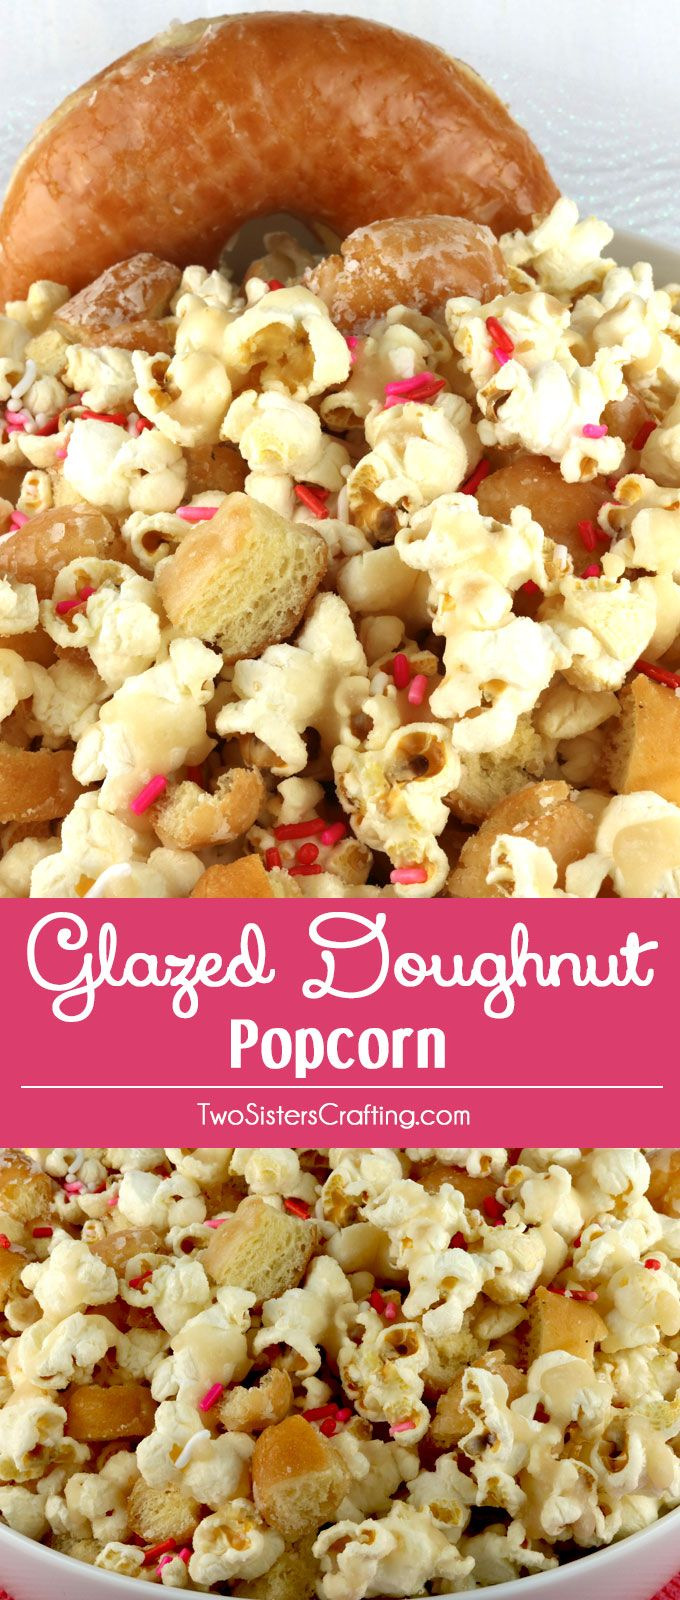 Glazed Doughnut Popcorn - salty popcorn covered in delicious homemade doughnut glaze and tossed with yummy pieces of Glazed Doughnut. Delicious! This is an easy to make dessert that is sure to please the donut lovers in your life. Pin this Popcorn Treat for later and follow us for more fun Popcorn Recipe Ideas.